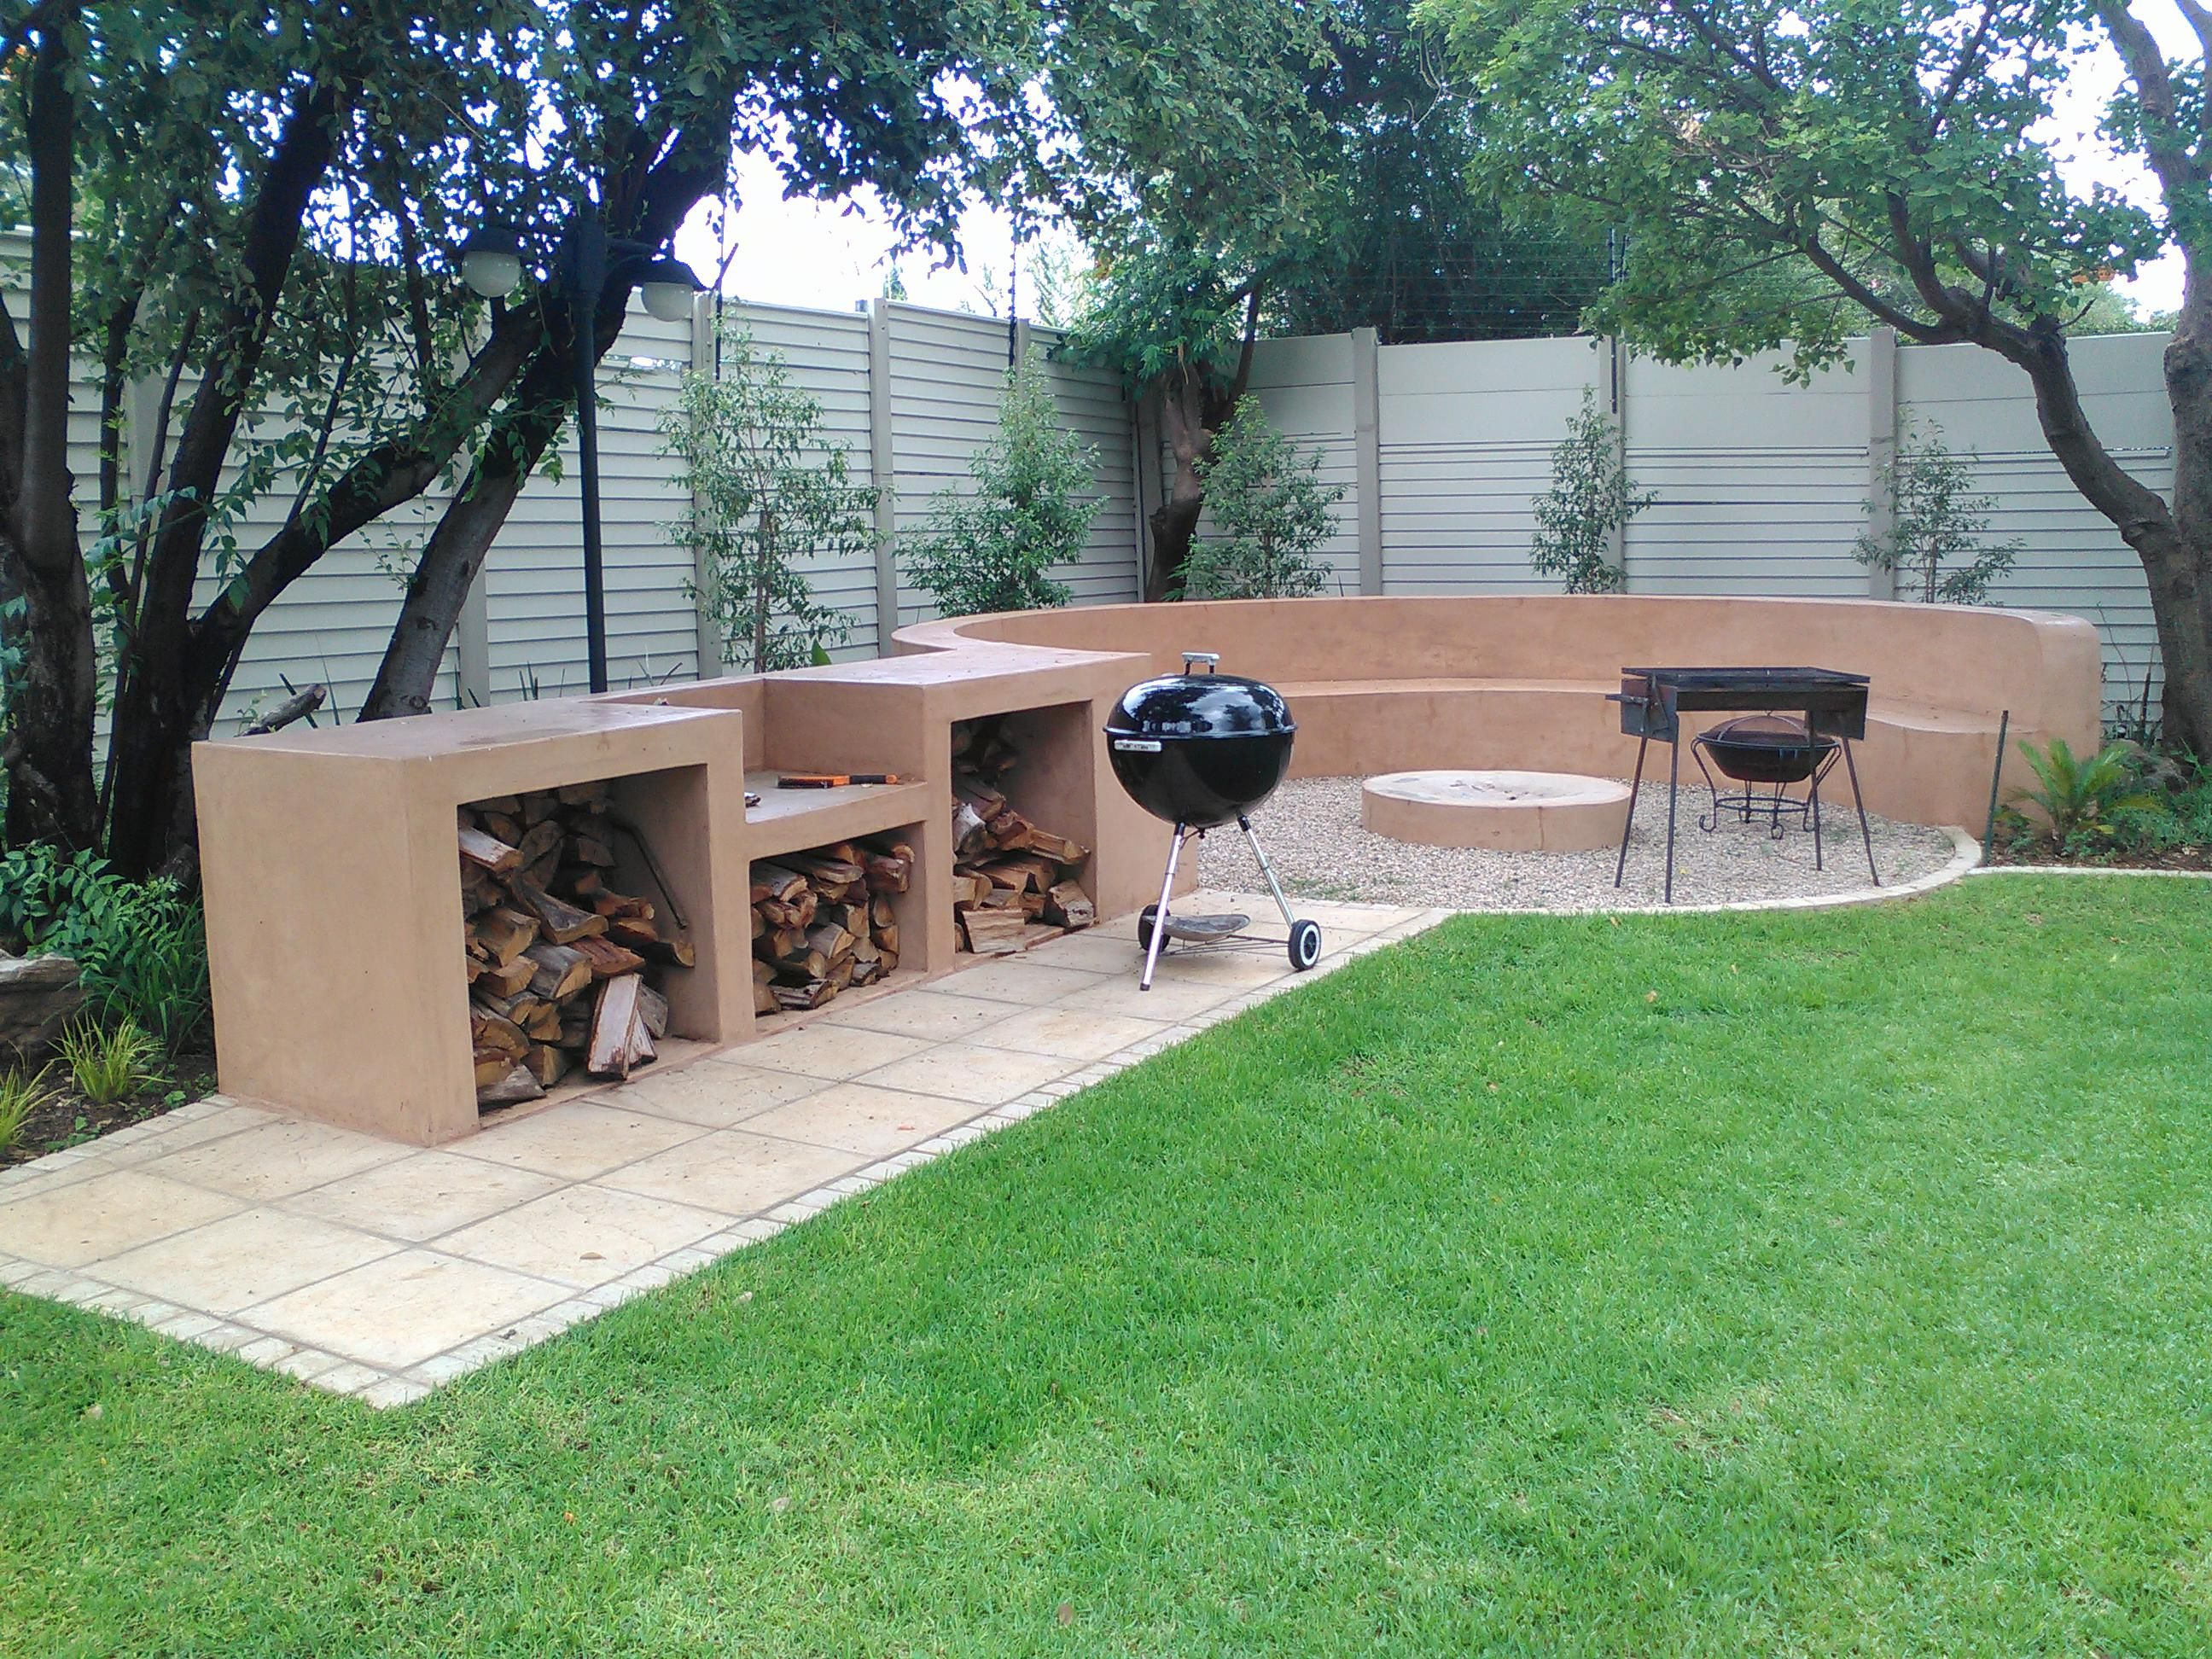 Fire Pits And Entertainment Areas Fire Pit Backyard Outdoor Fire Pit Backyard Diy backyard entertaining area